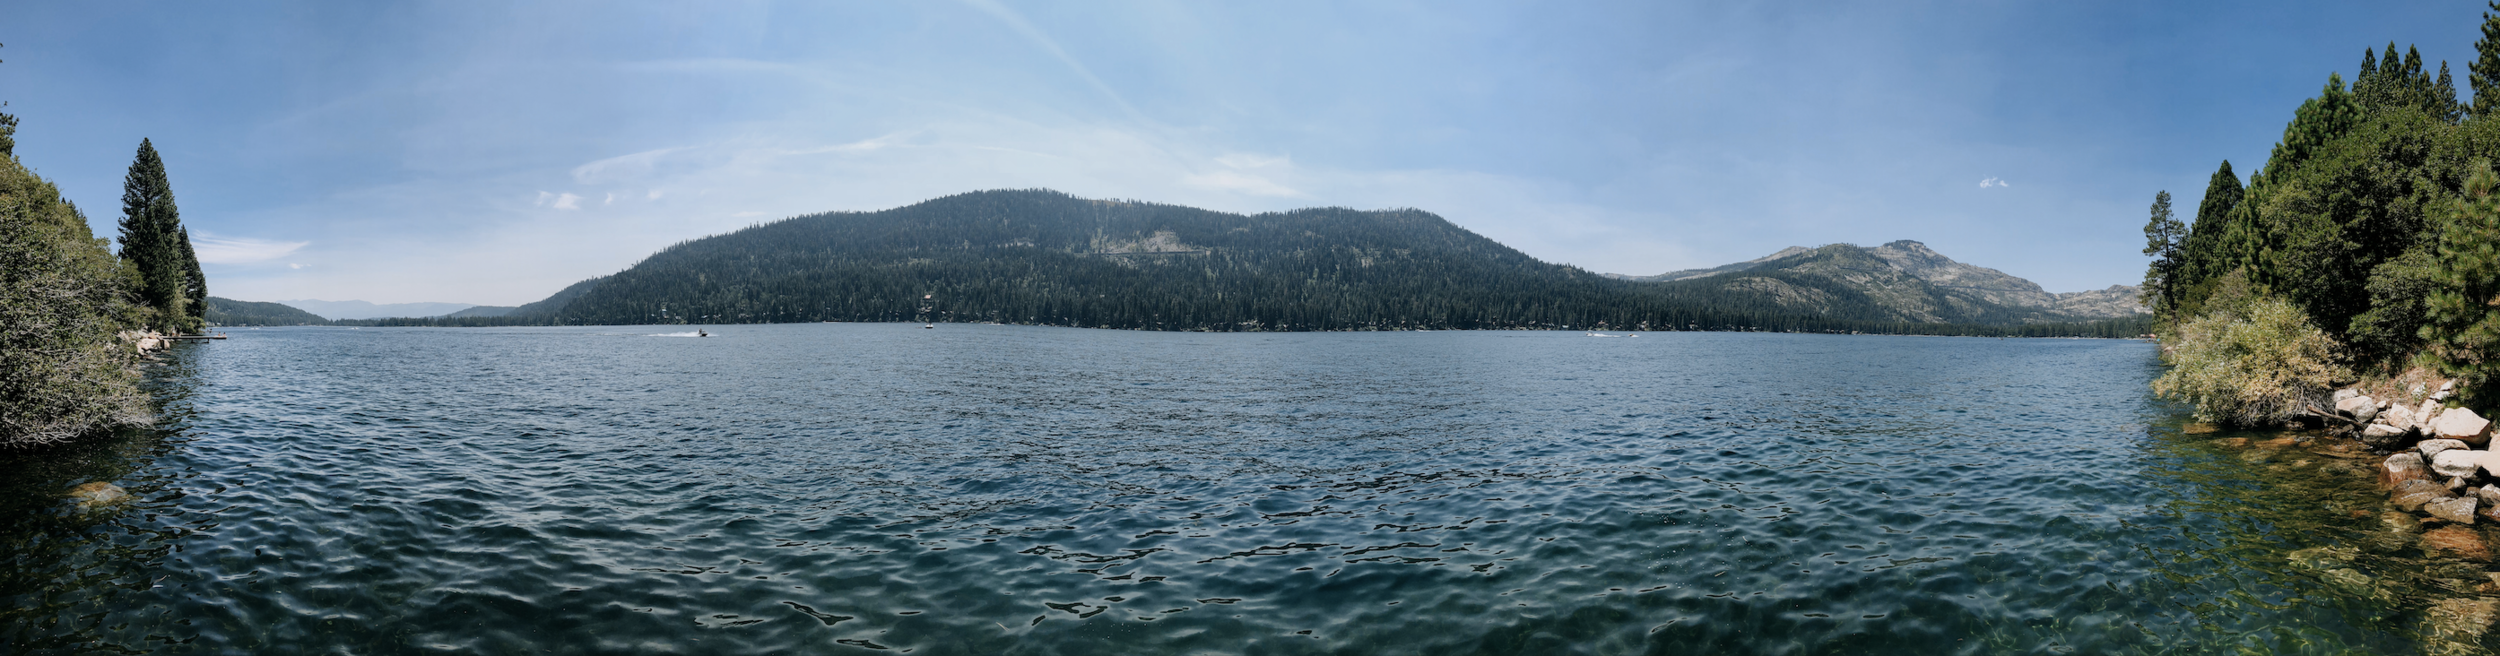 Scored ourselves a private dock around the lake near Truckee - we really loved this spot.